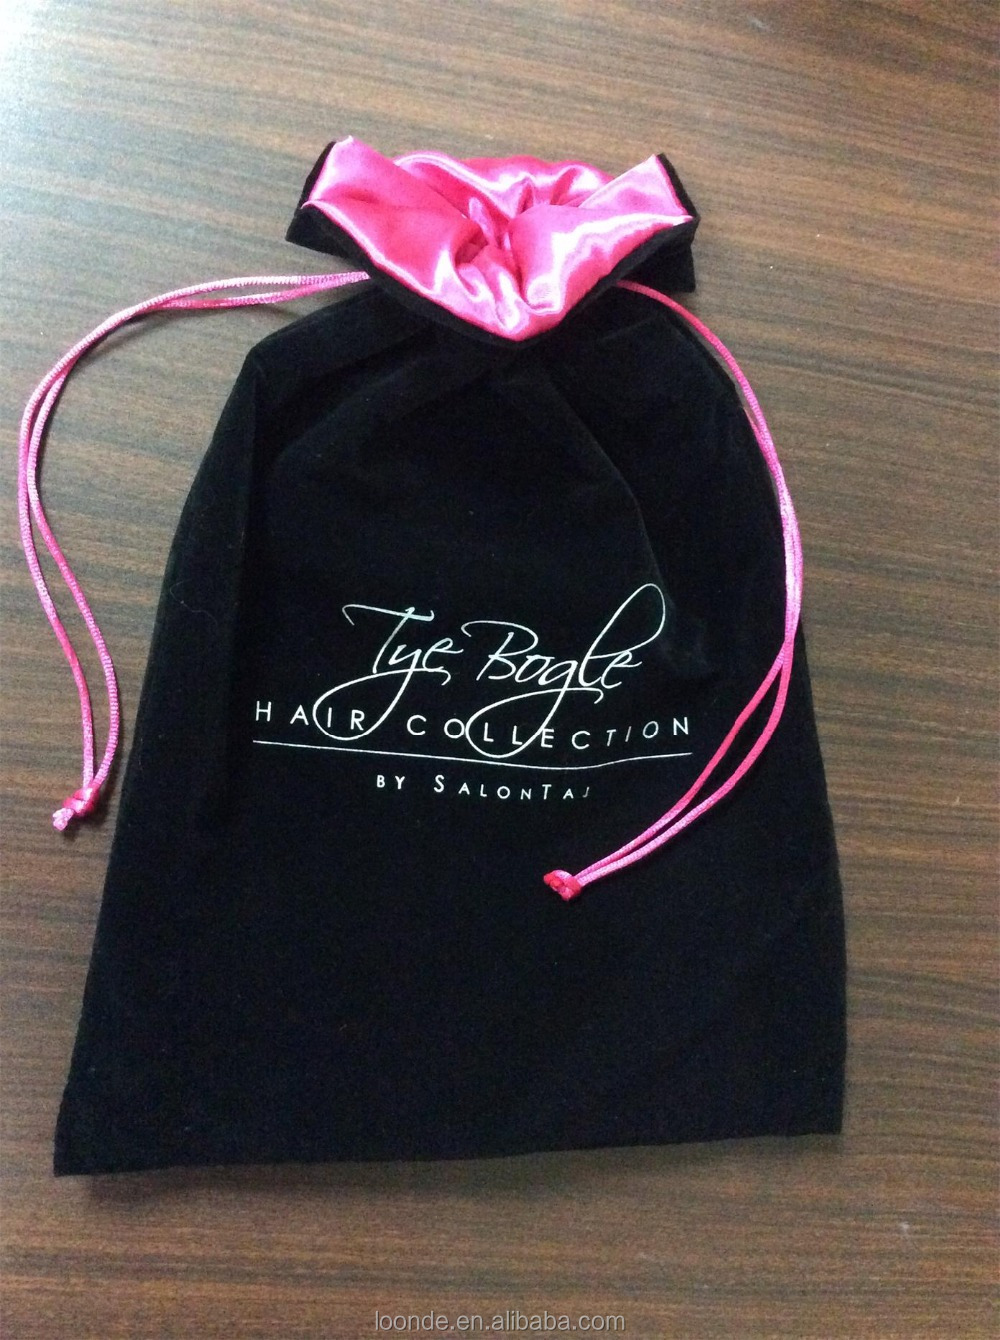 4 Quot X 16 Quot Superior Quality Satin Hair Packaging Bags For